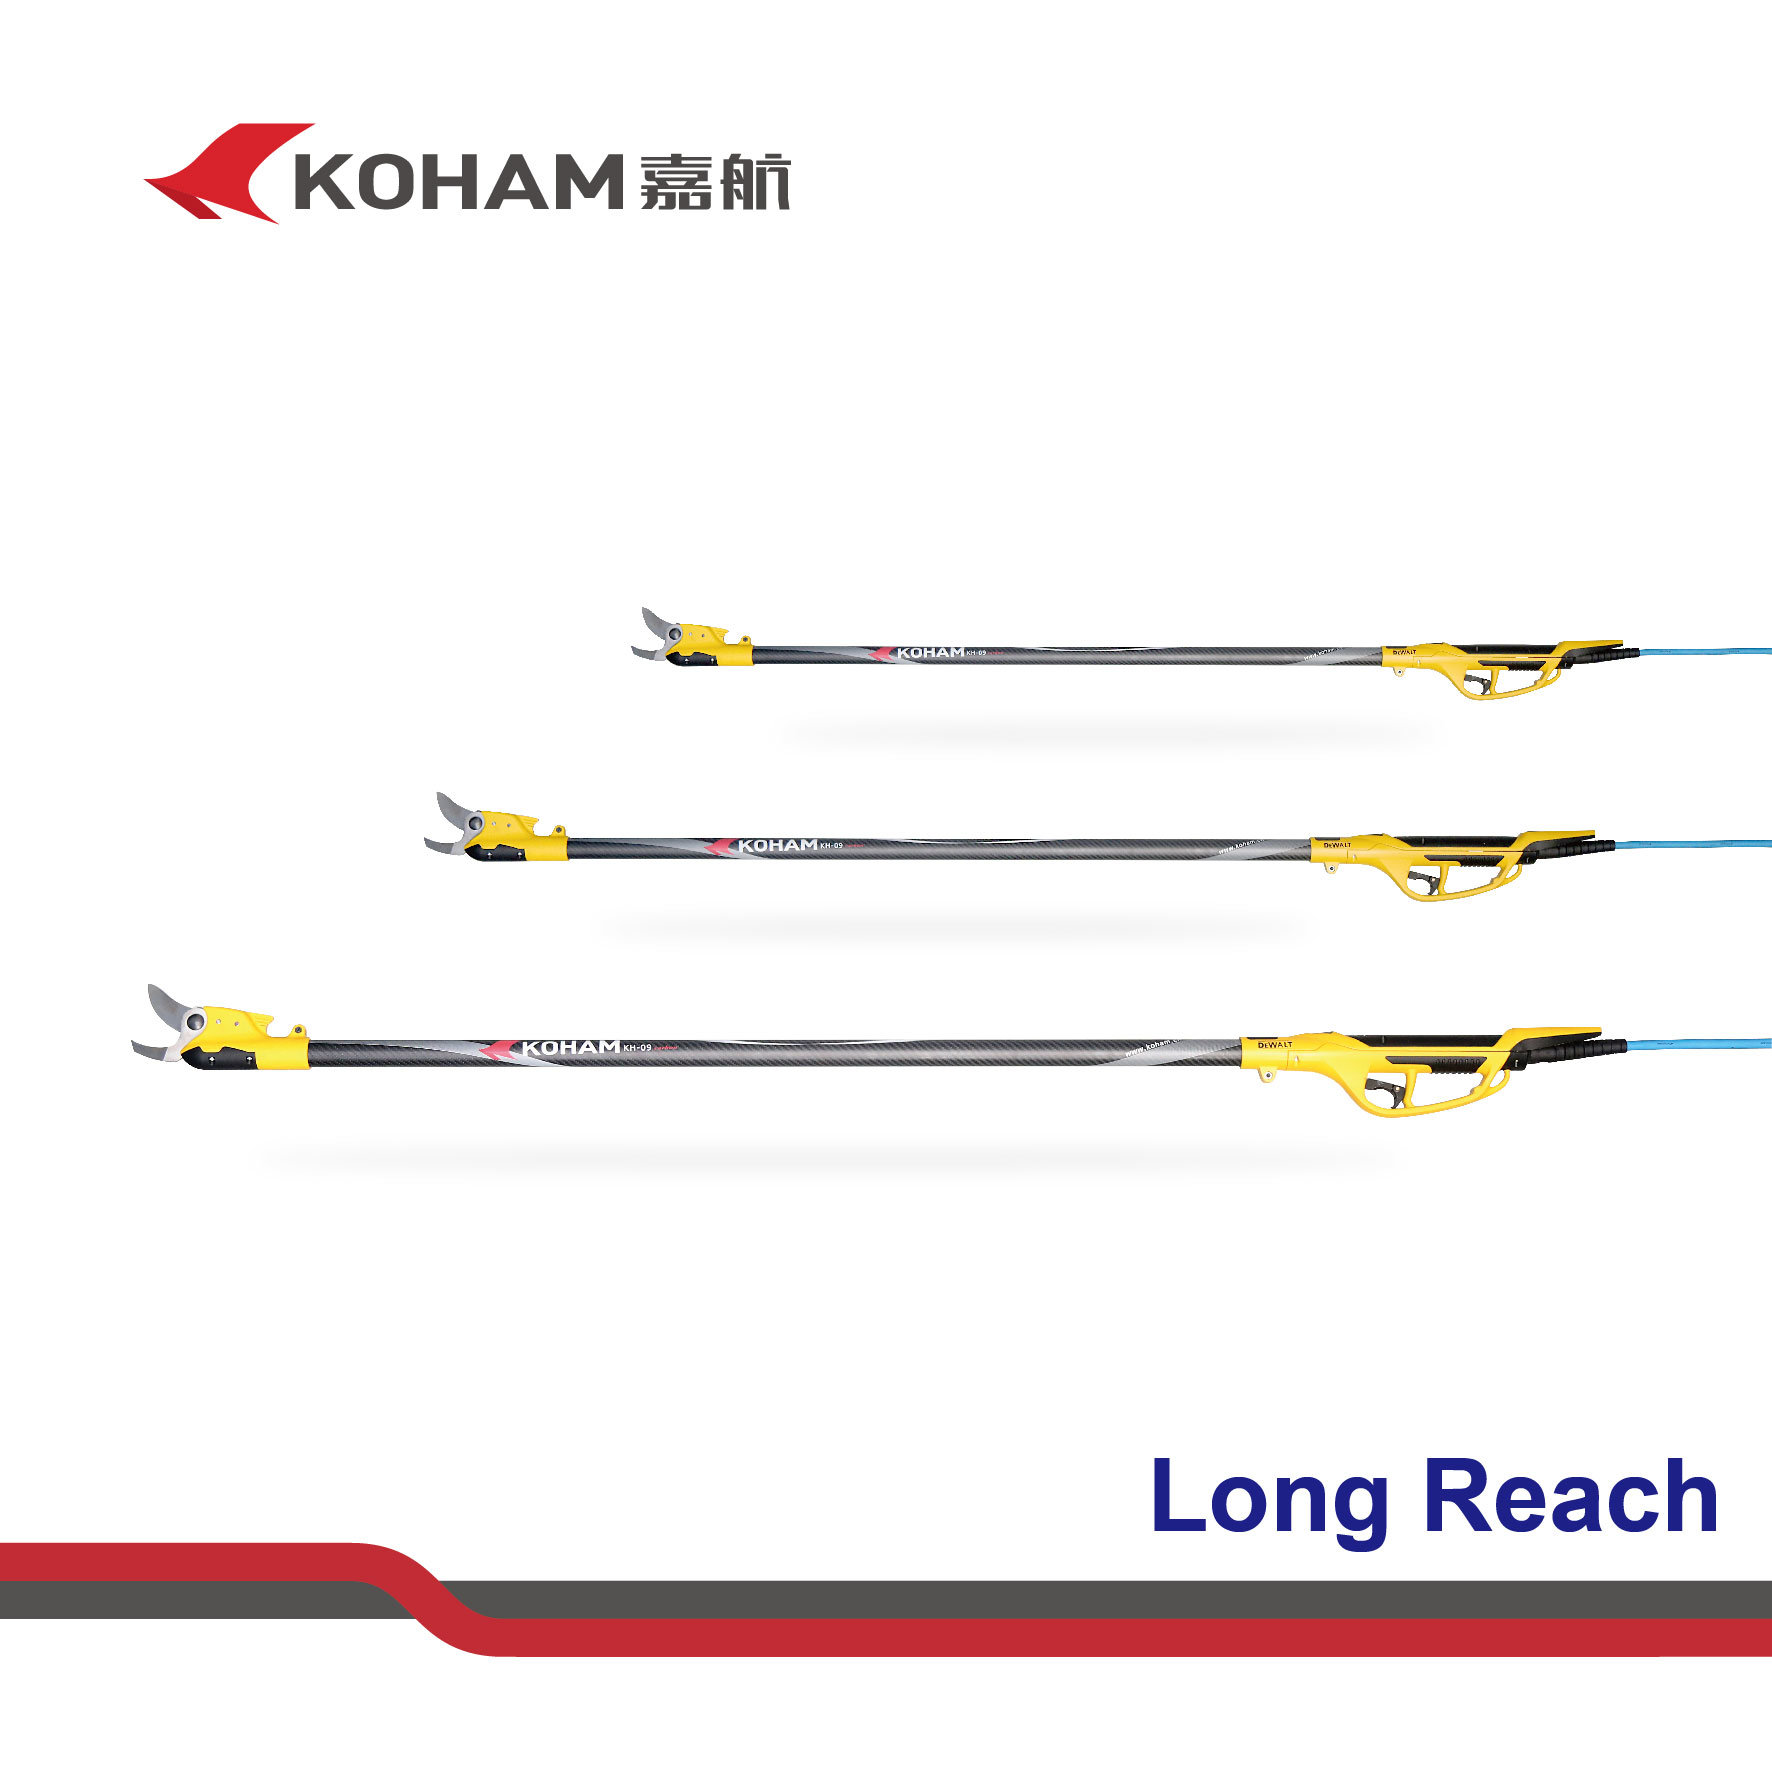 Koham Tools Long Reach Cutting Lithium pictures & photos